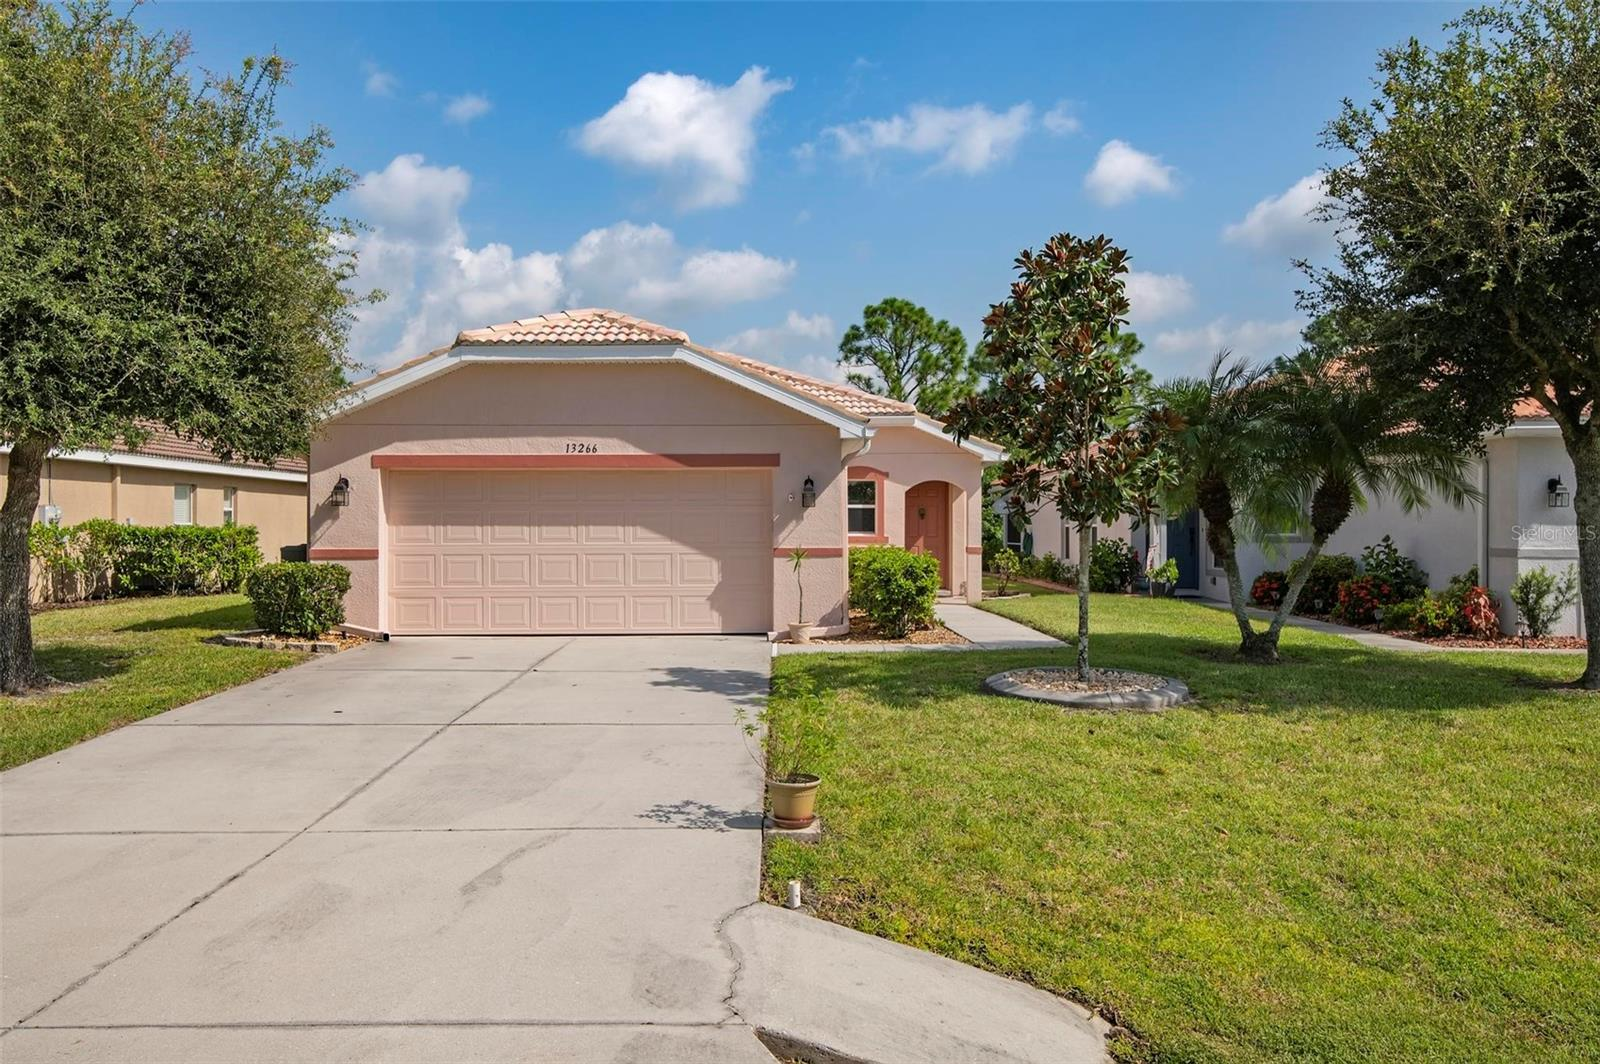 Primary photo of recently sold MLS# C7448683